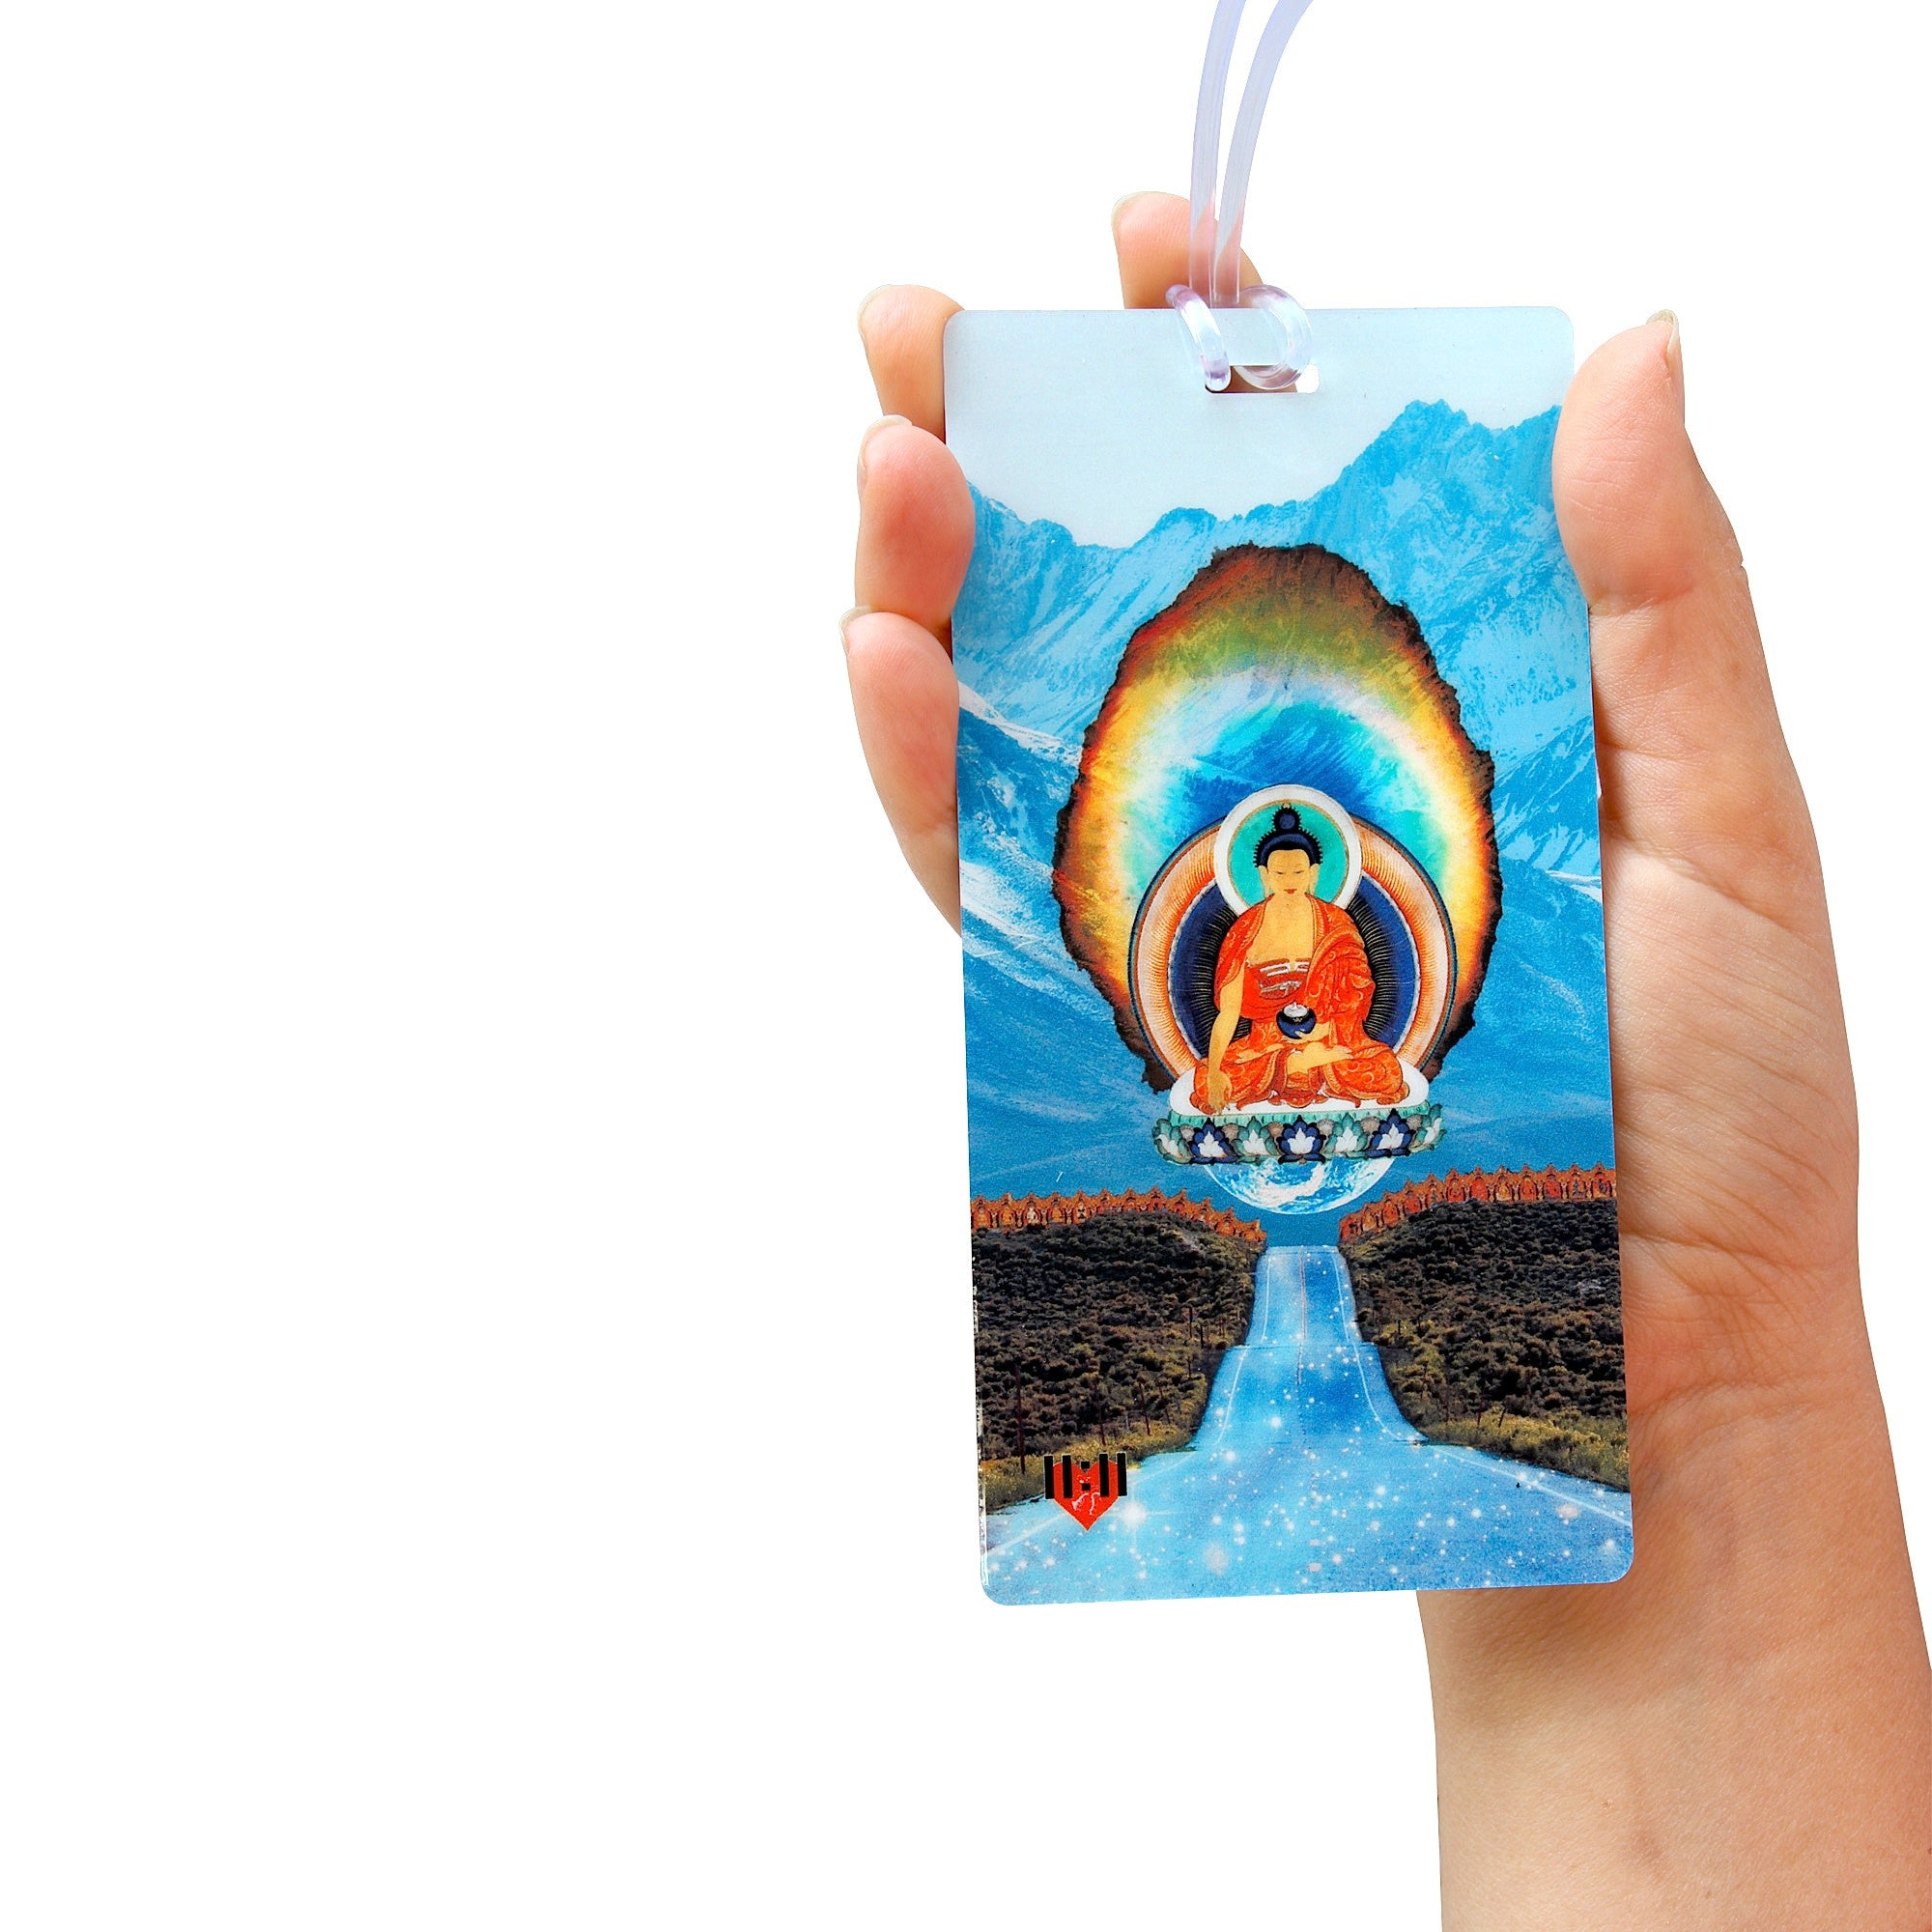 Diamond Buddha Luggage Bag Tag Set - 2 pc, Large by 11:11 Enterprises